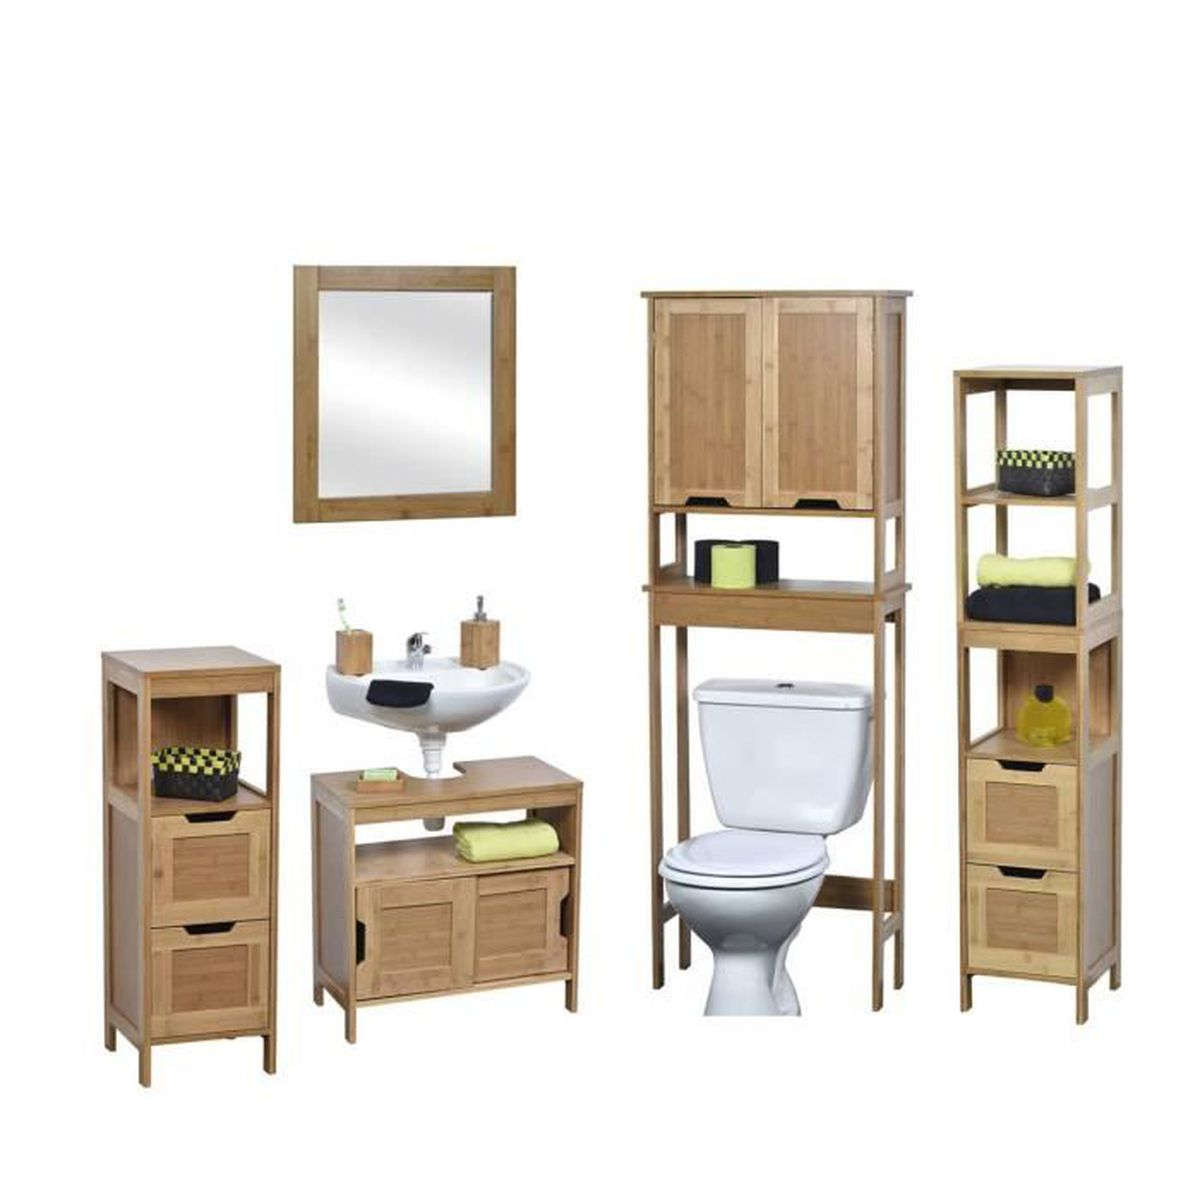 salle de bain compl te en bambou naturel achat vente. Black Bedroom Furniture Sets. Home Design Ideas